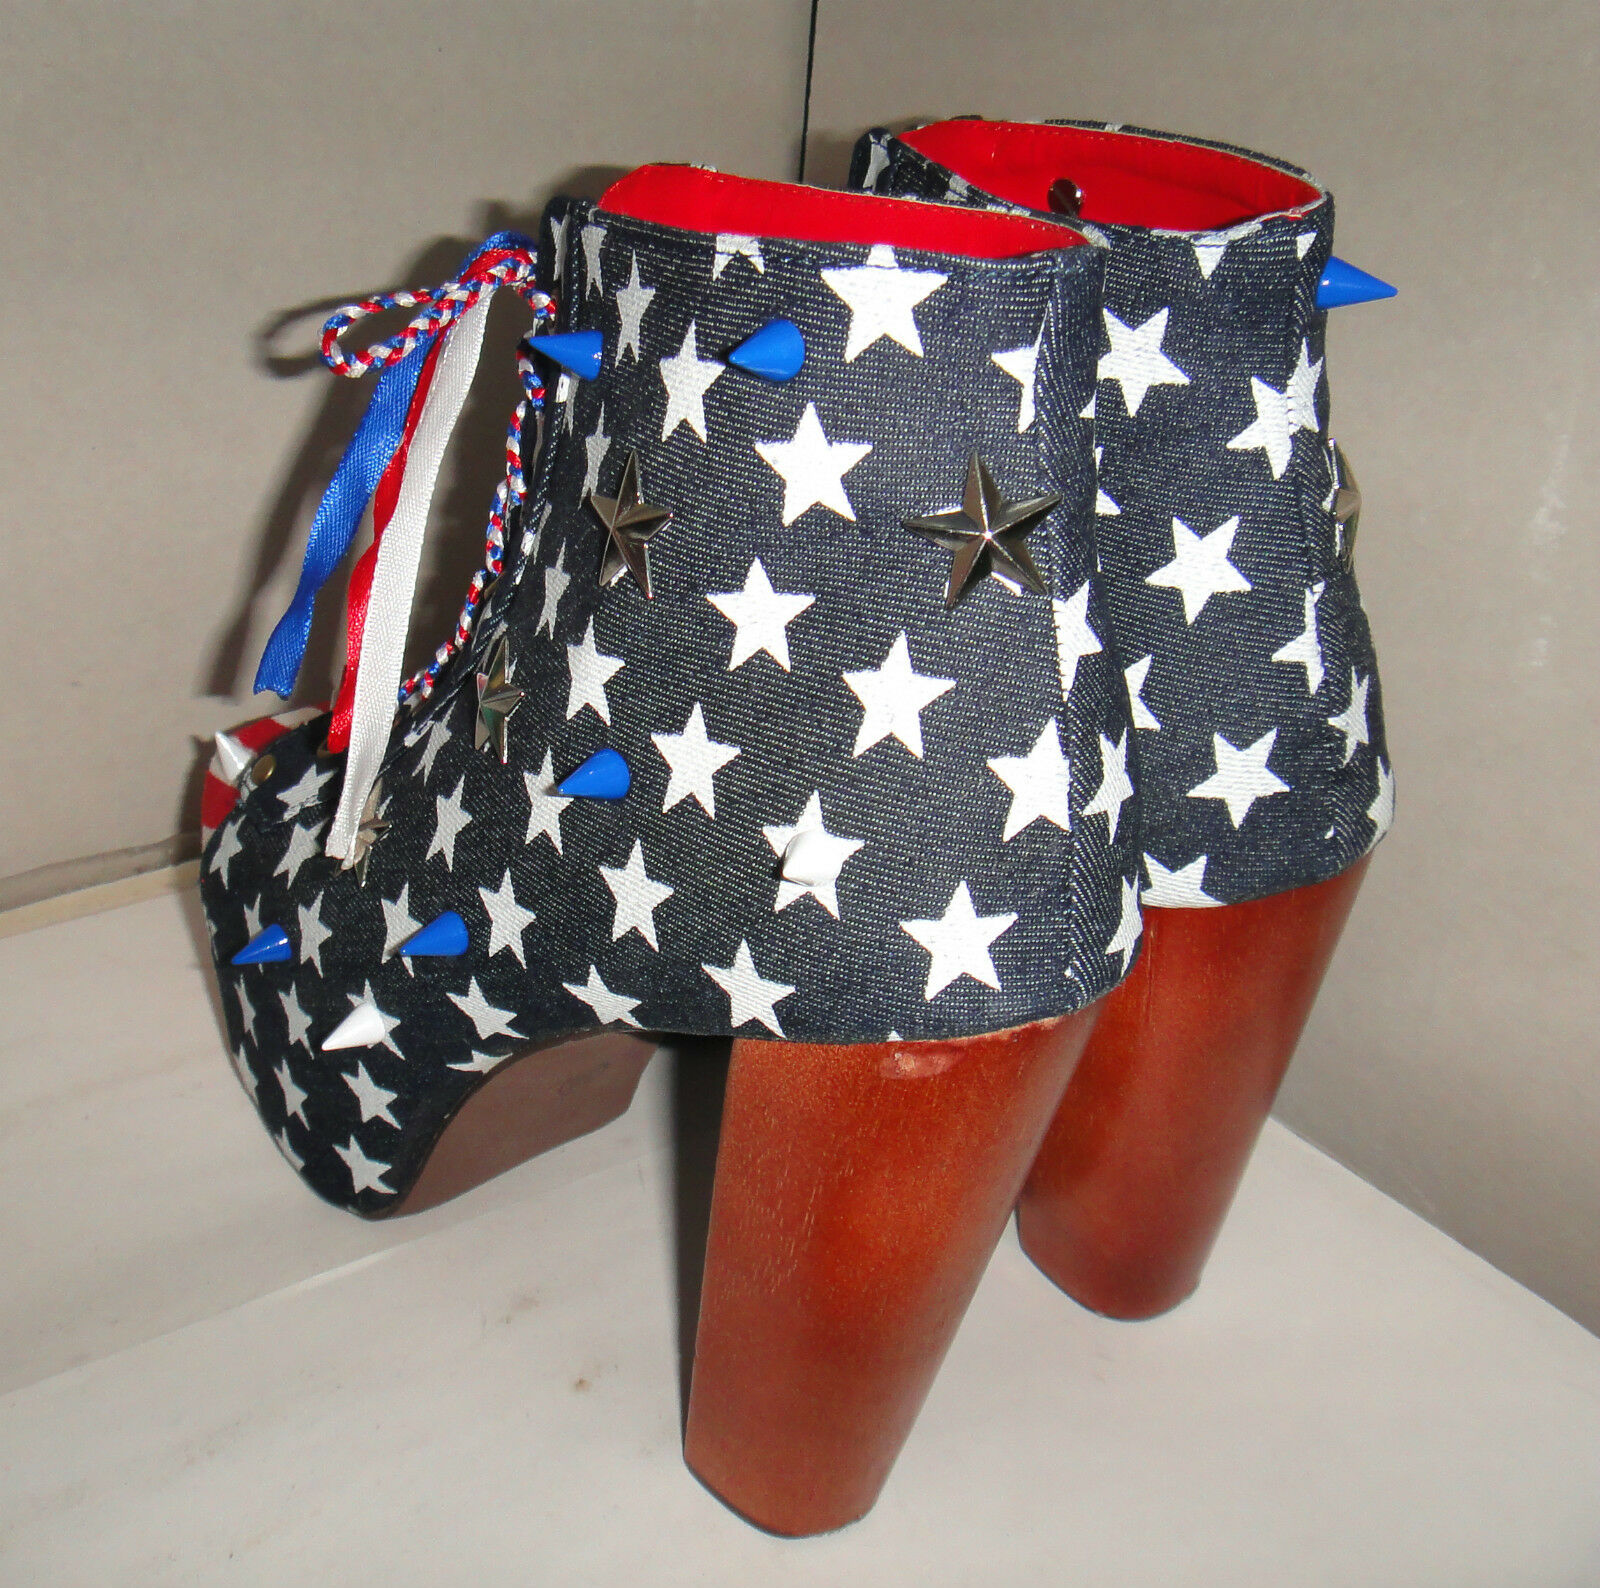 CHELISE CUSTOMISED ONE OFF USA FLAG STARS STUD PLATFORM SPIKE STUD STARS KITSCH BOOTS 5 38 8894d8